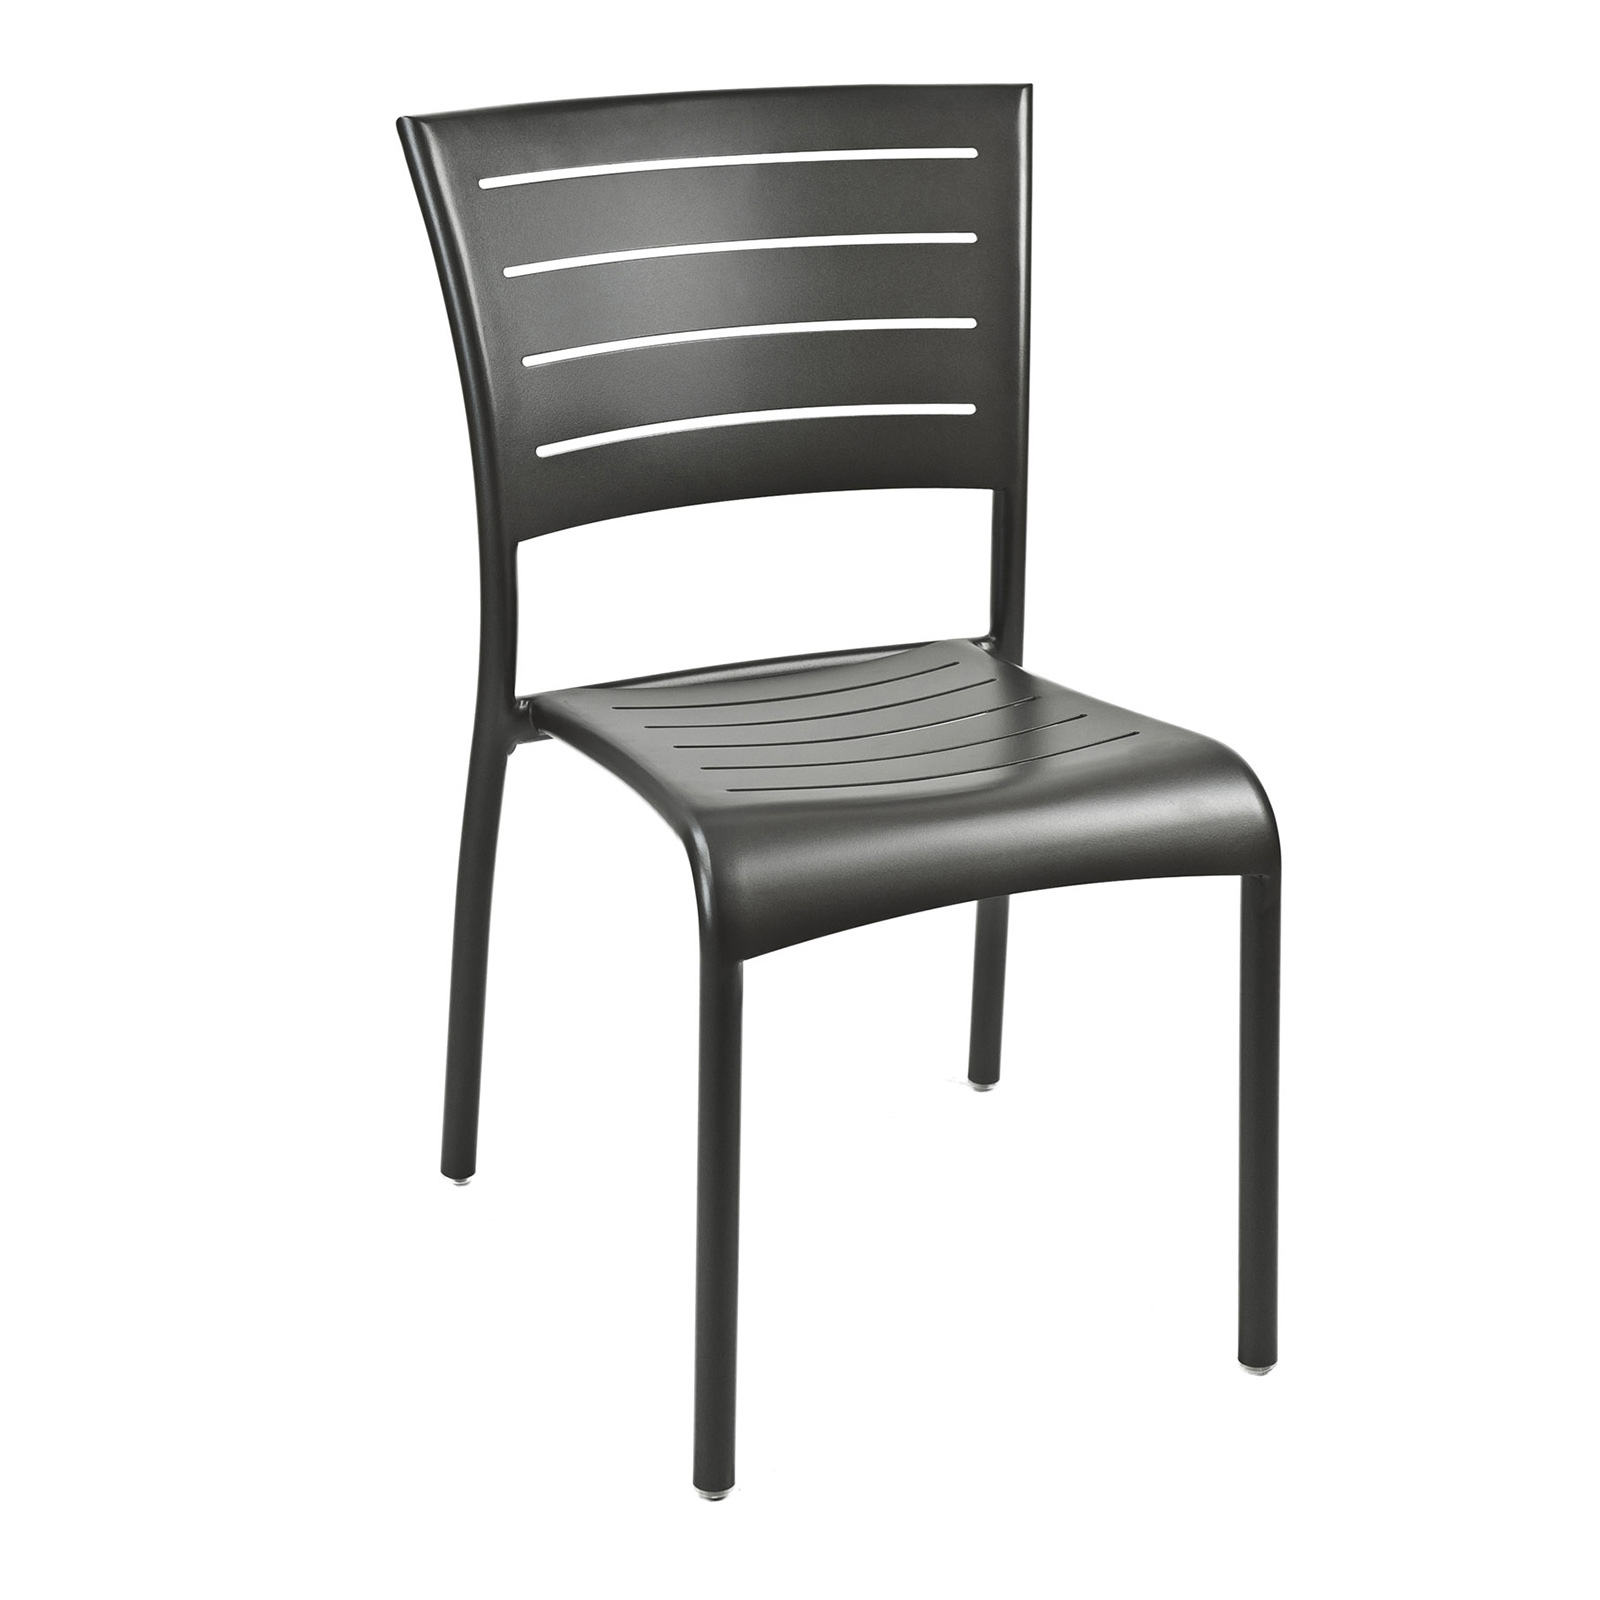 Florida Seating AL-5000-S BRONZE chair, side, outdoor